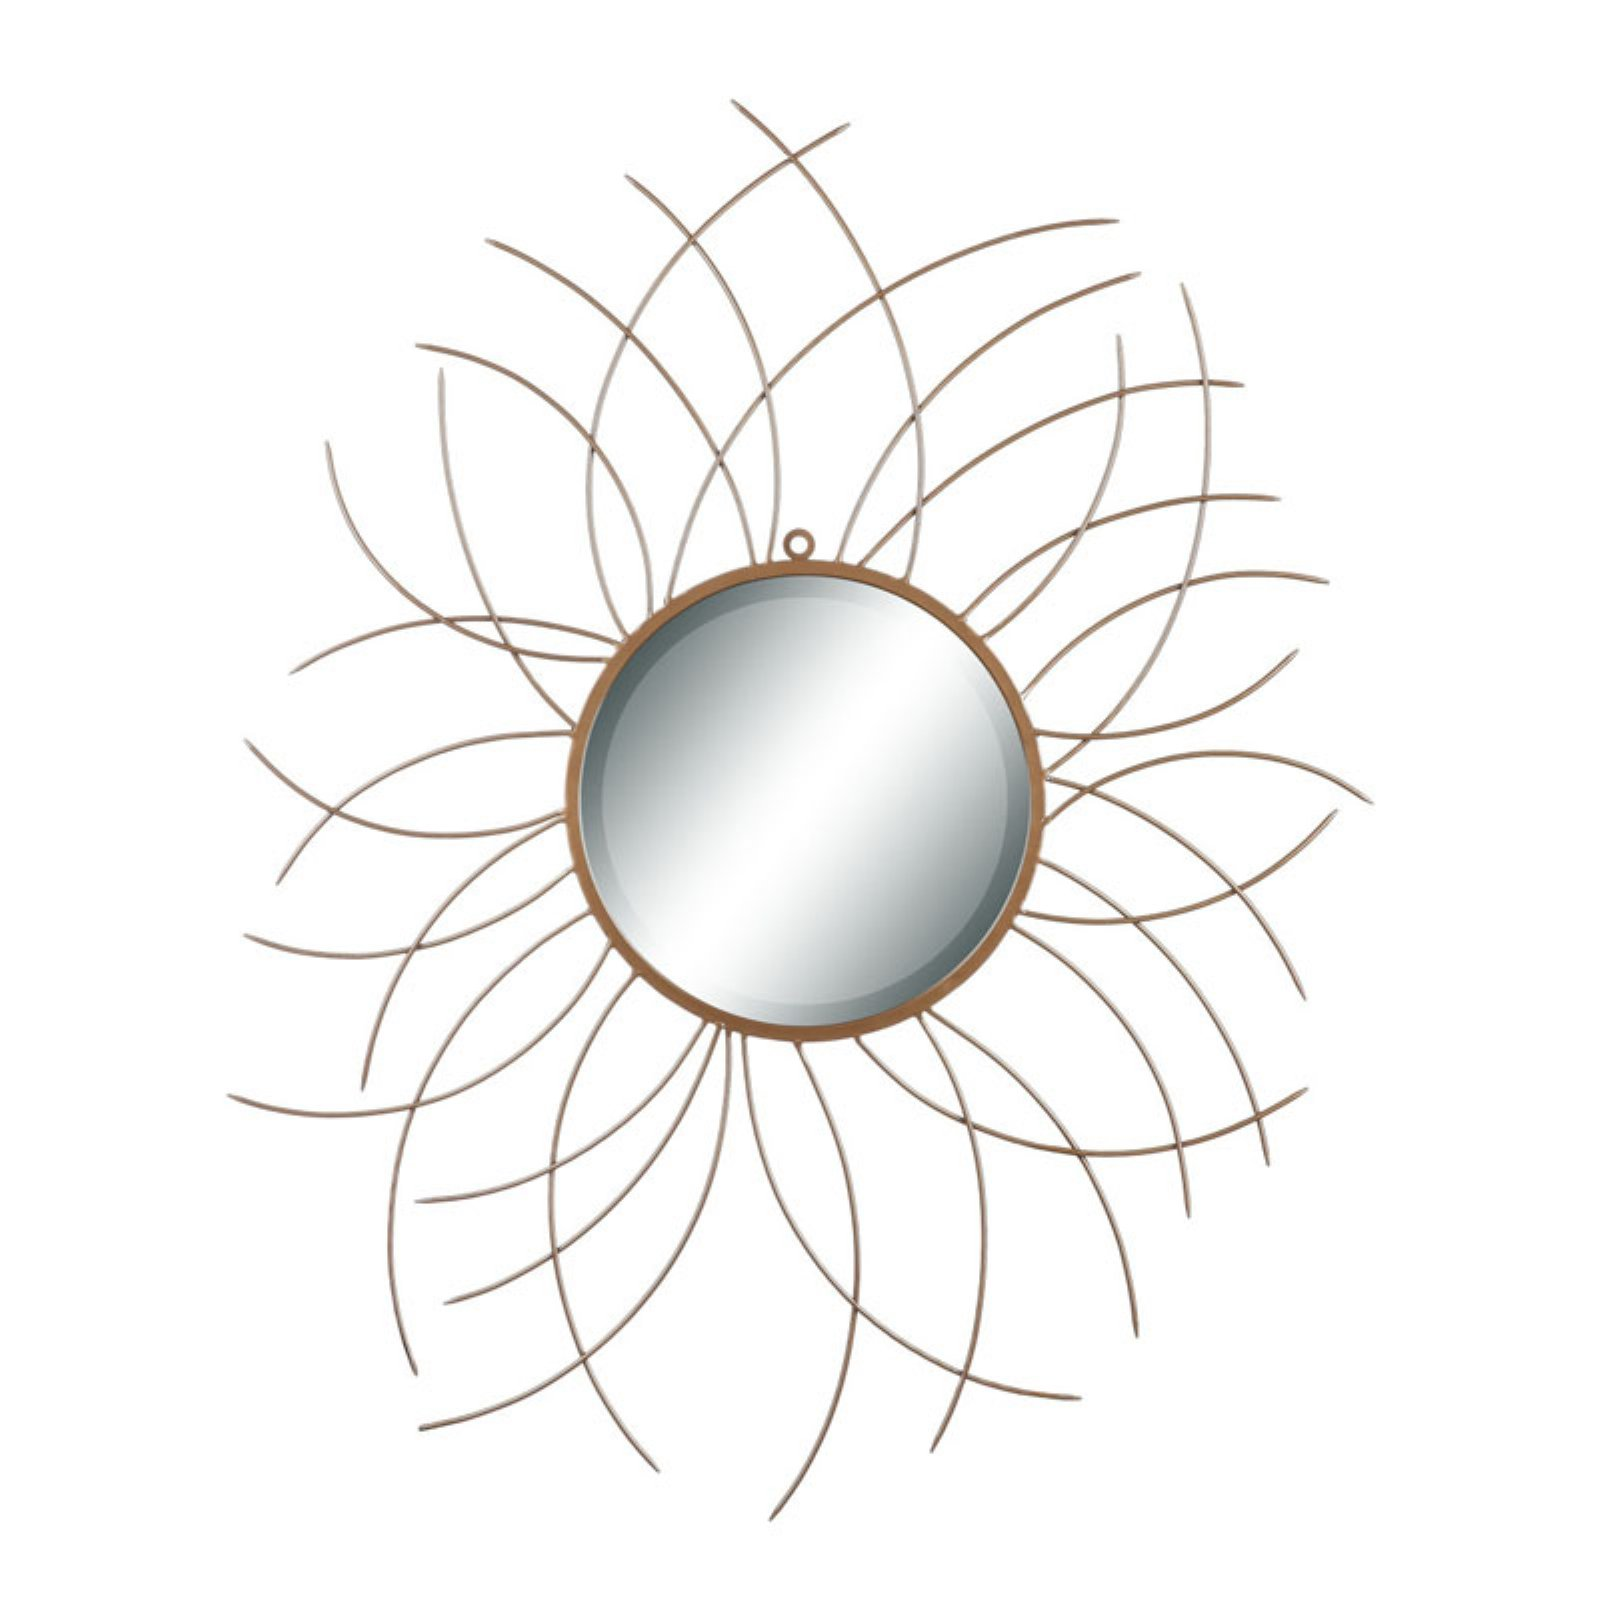 Beason Starburst Mirror - 28W x 35H in.